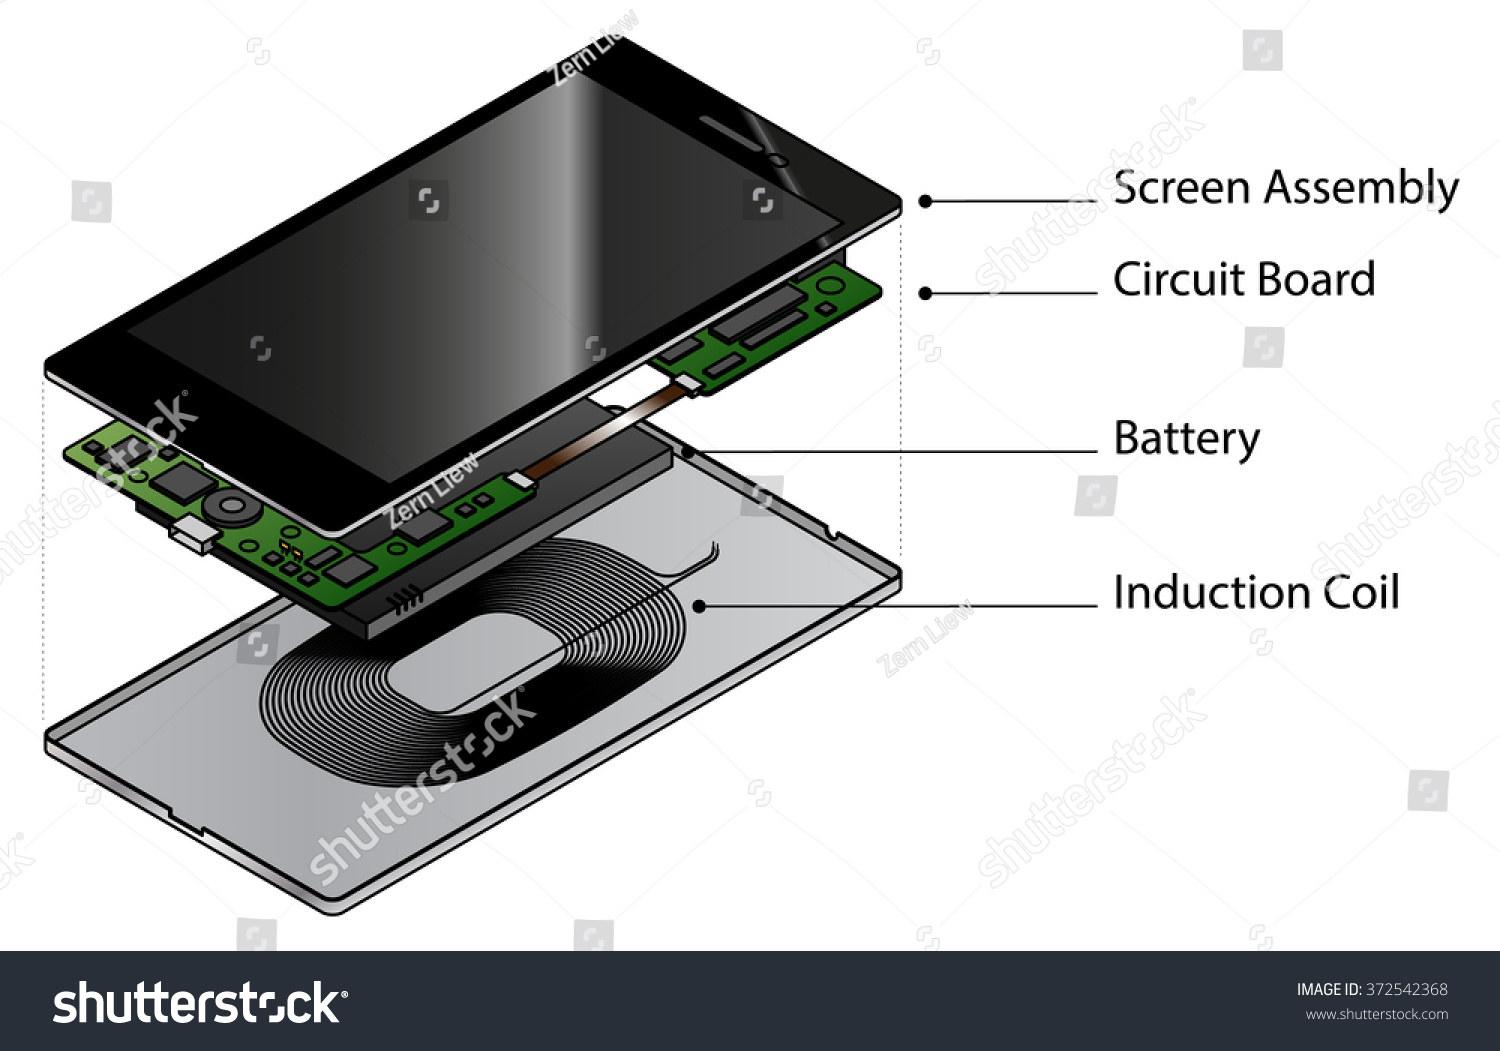 hight resolution of an exploded diagram showing the internal components of a smart phone with a wireless charging induction